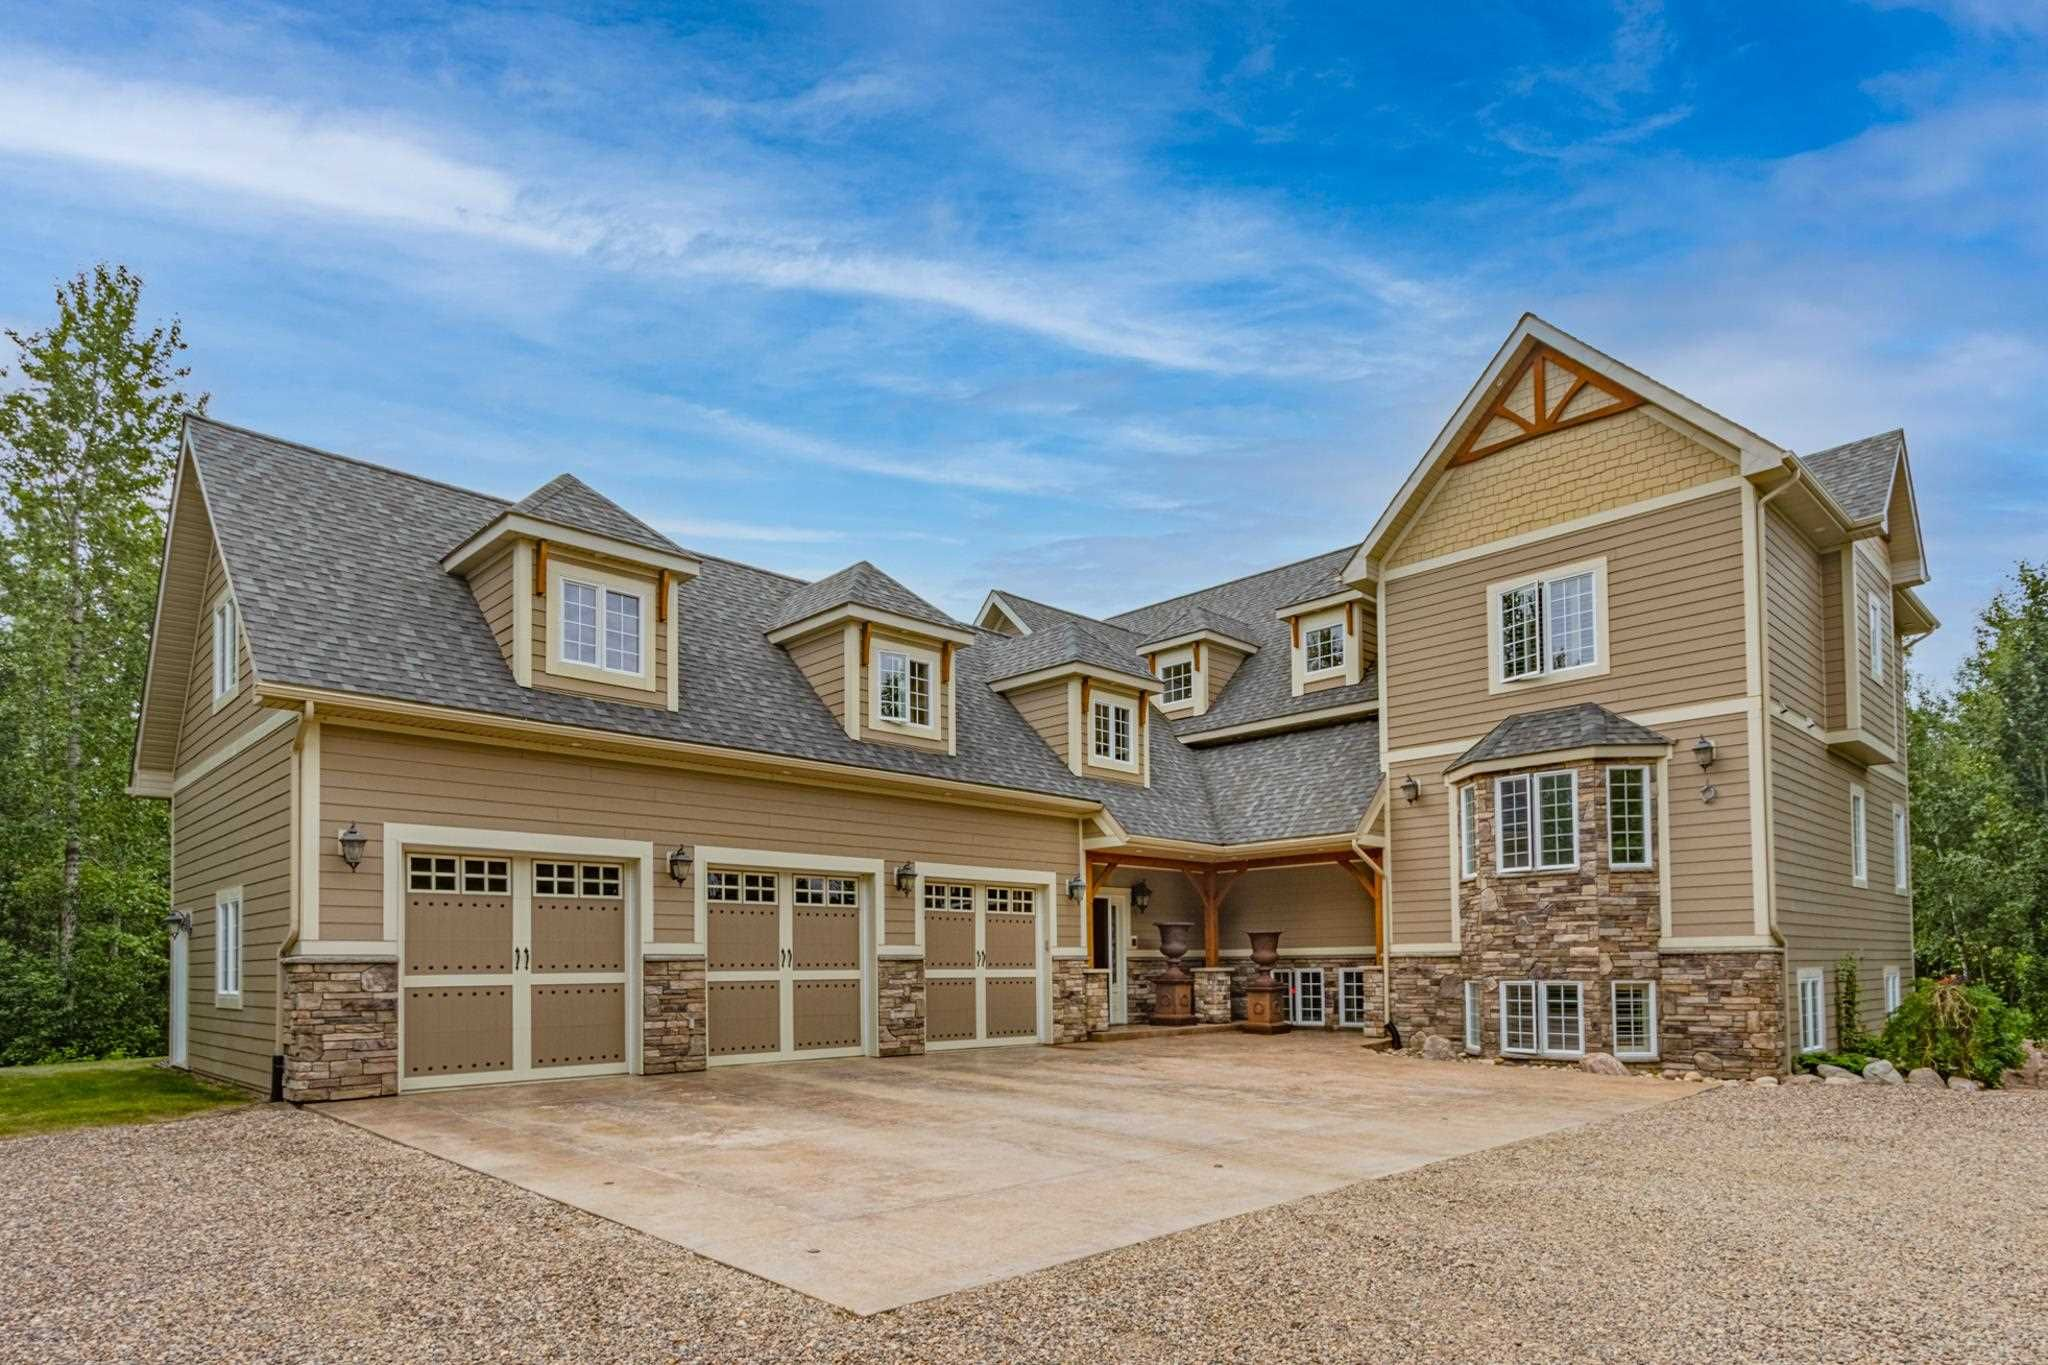 Main Photo: 4640 Gateway Drive: Rural Athabasca County House for sale : MLS®# E4253933